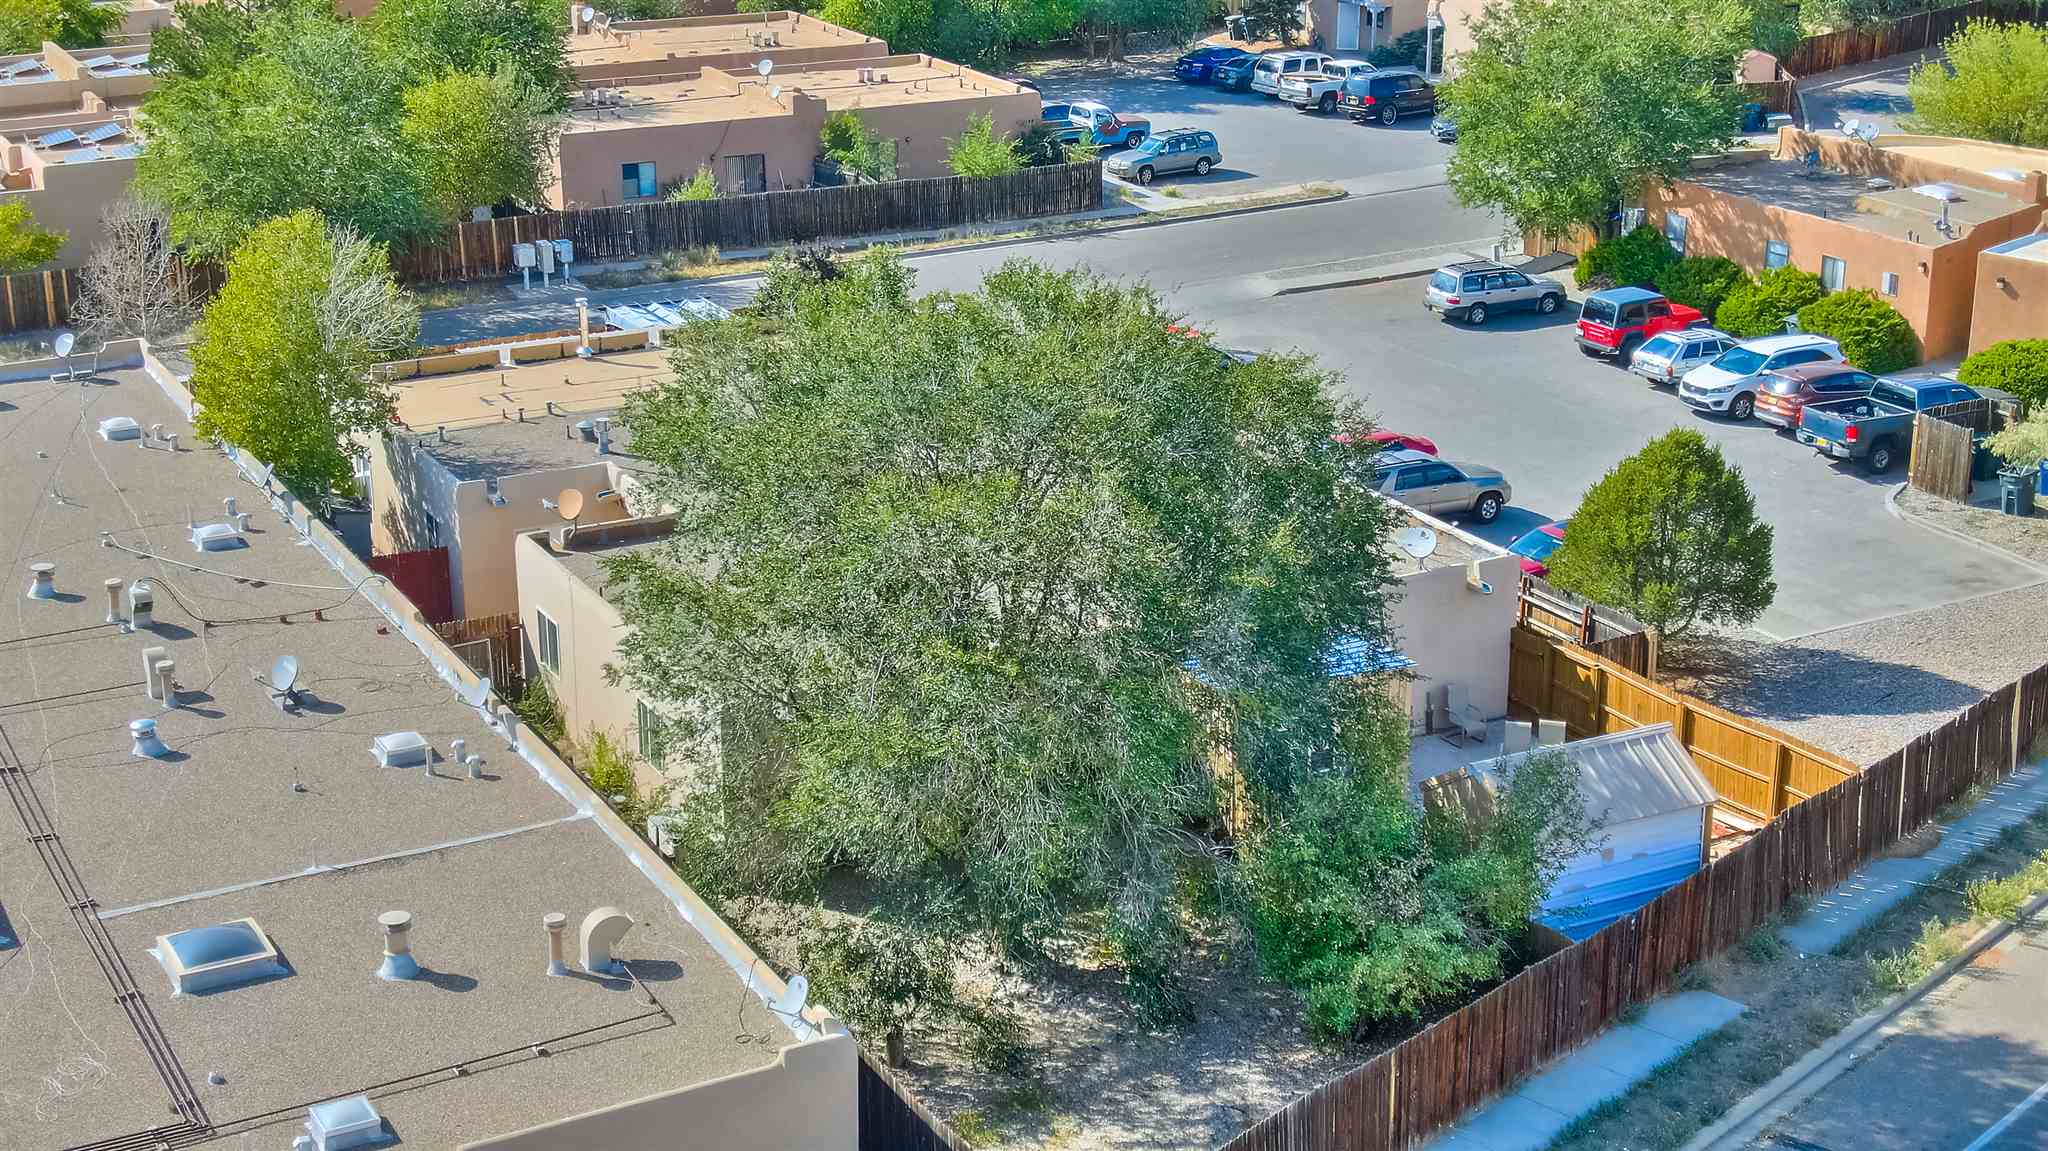 Large fenced Backyard, 2-Bedroom, 1.75 Bath Condo on a single level.  Property has been rented for several years.  The unit does need work.  Apple tree in back yard.  Newer water heater in 2016, newer toilets in 2018, paint and carpet newer in 2017.  Off street parking.  Radiant heat without a cooling system.  This is an opportunity to make improvements to the property.